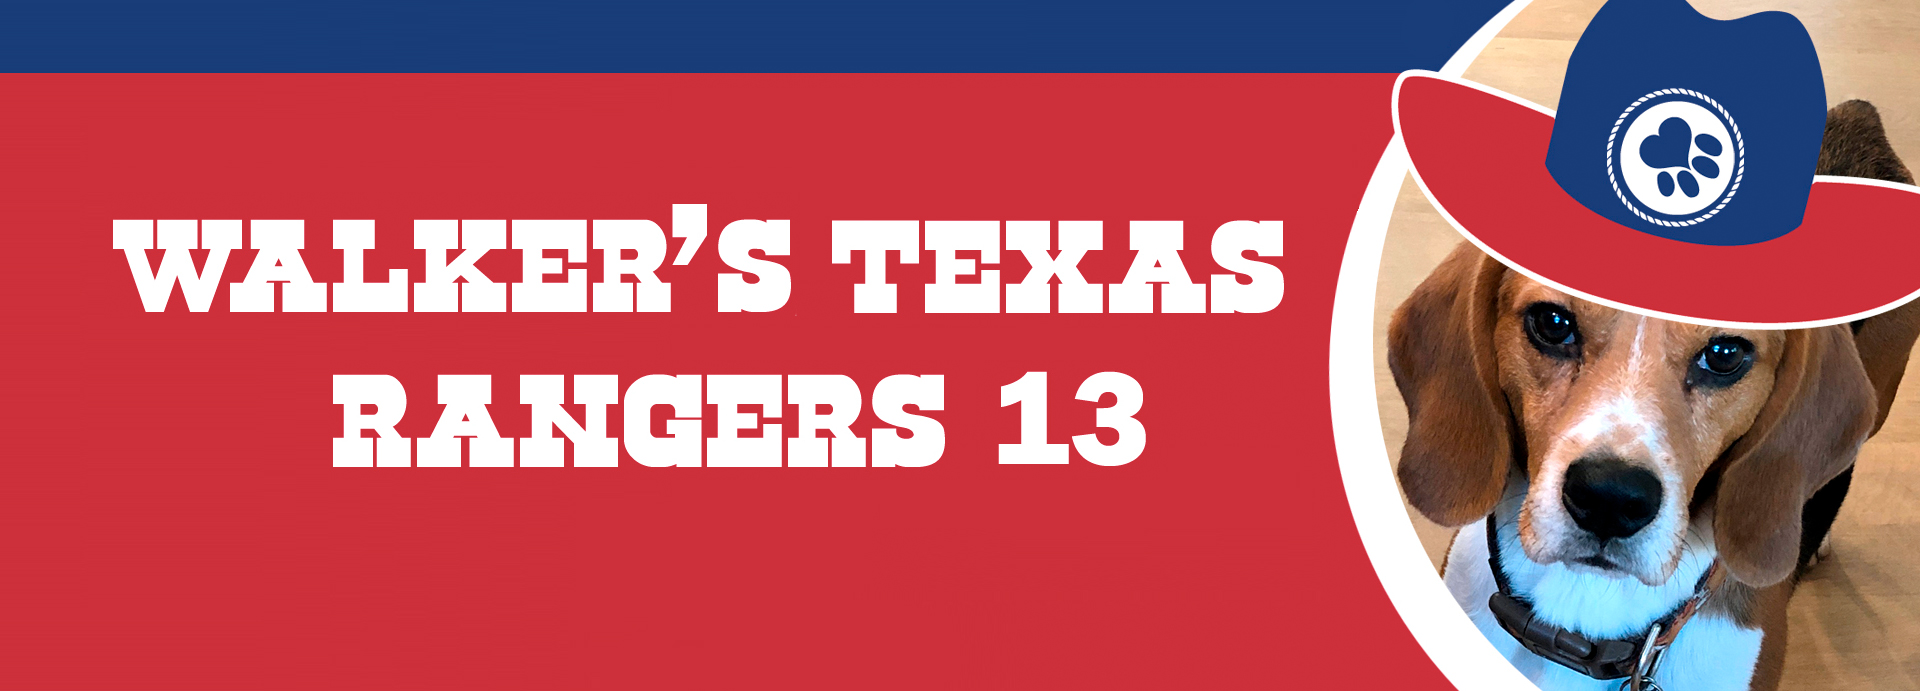 Walker's Texas Rangers 13